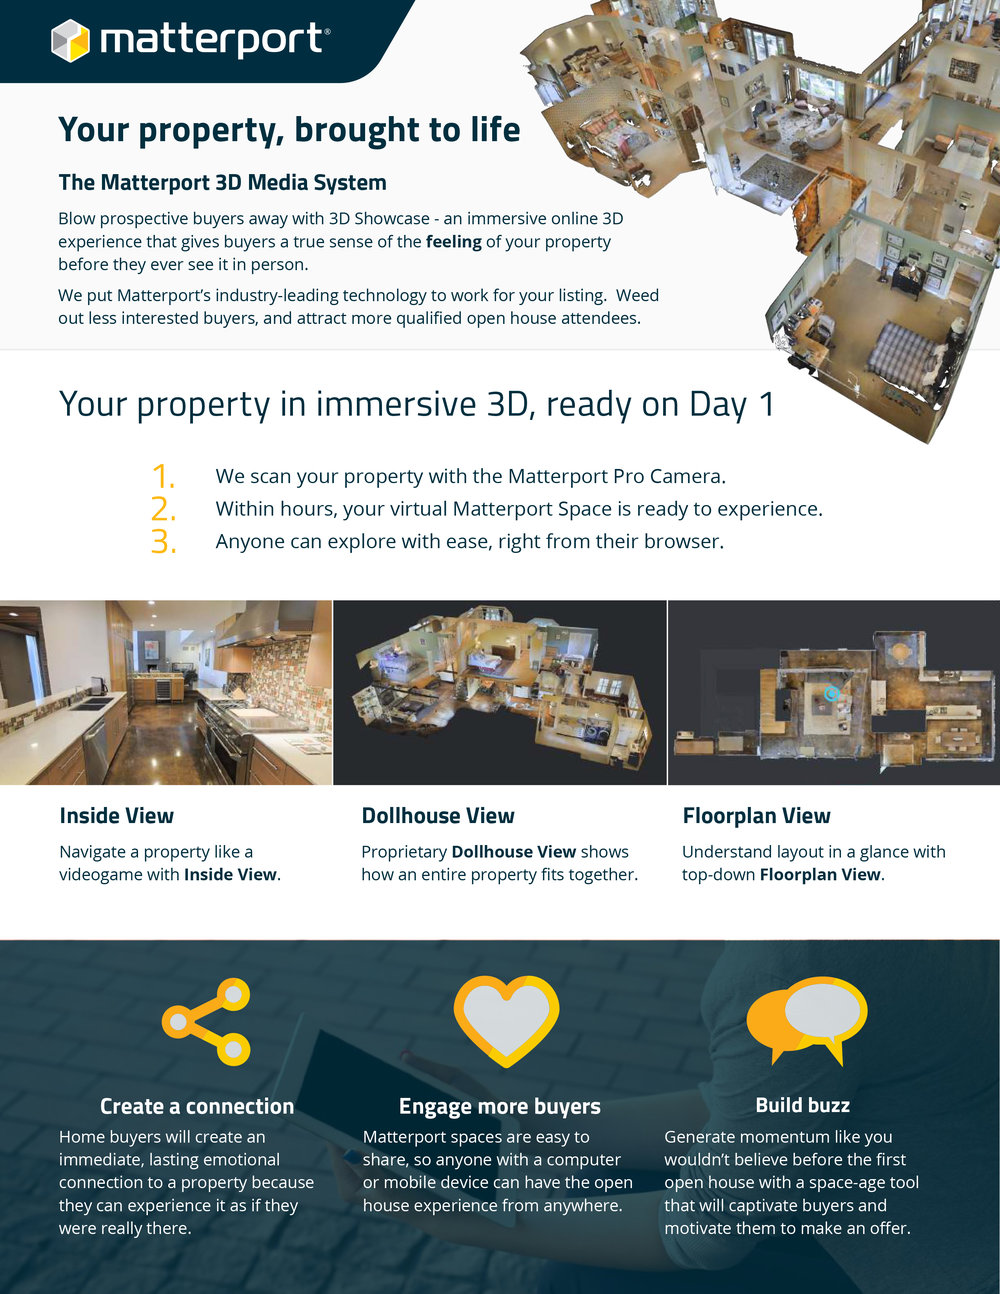 matterport_for_sellers_12032015compressed.jpg